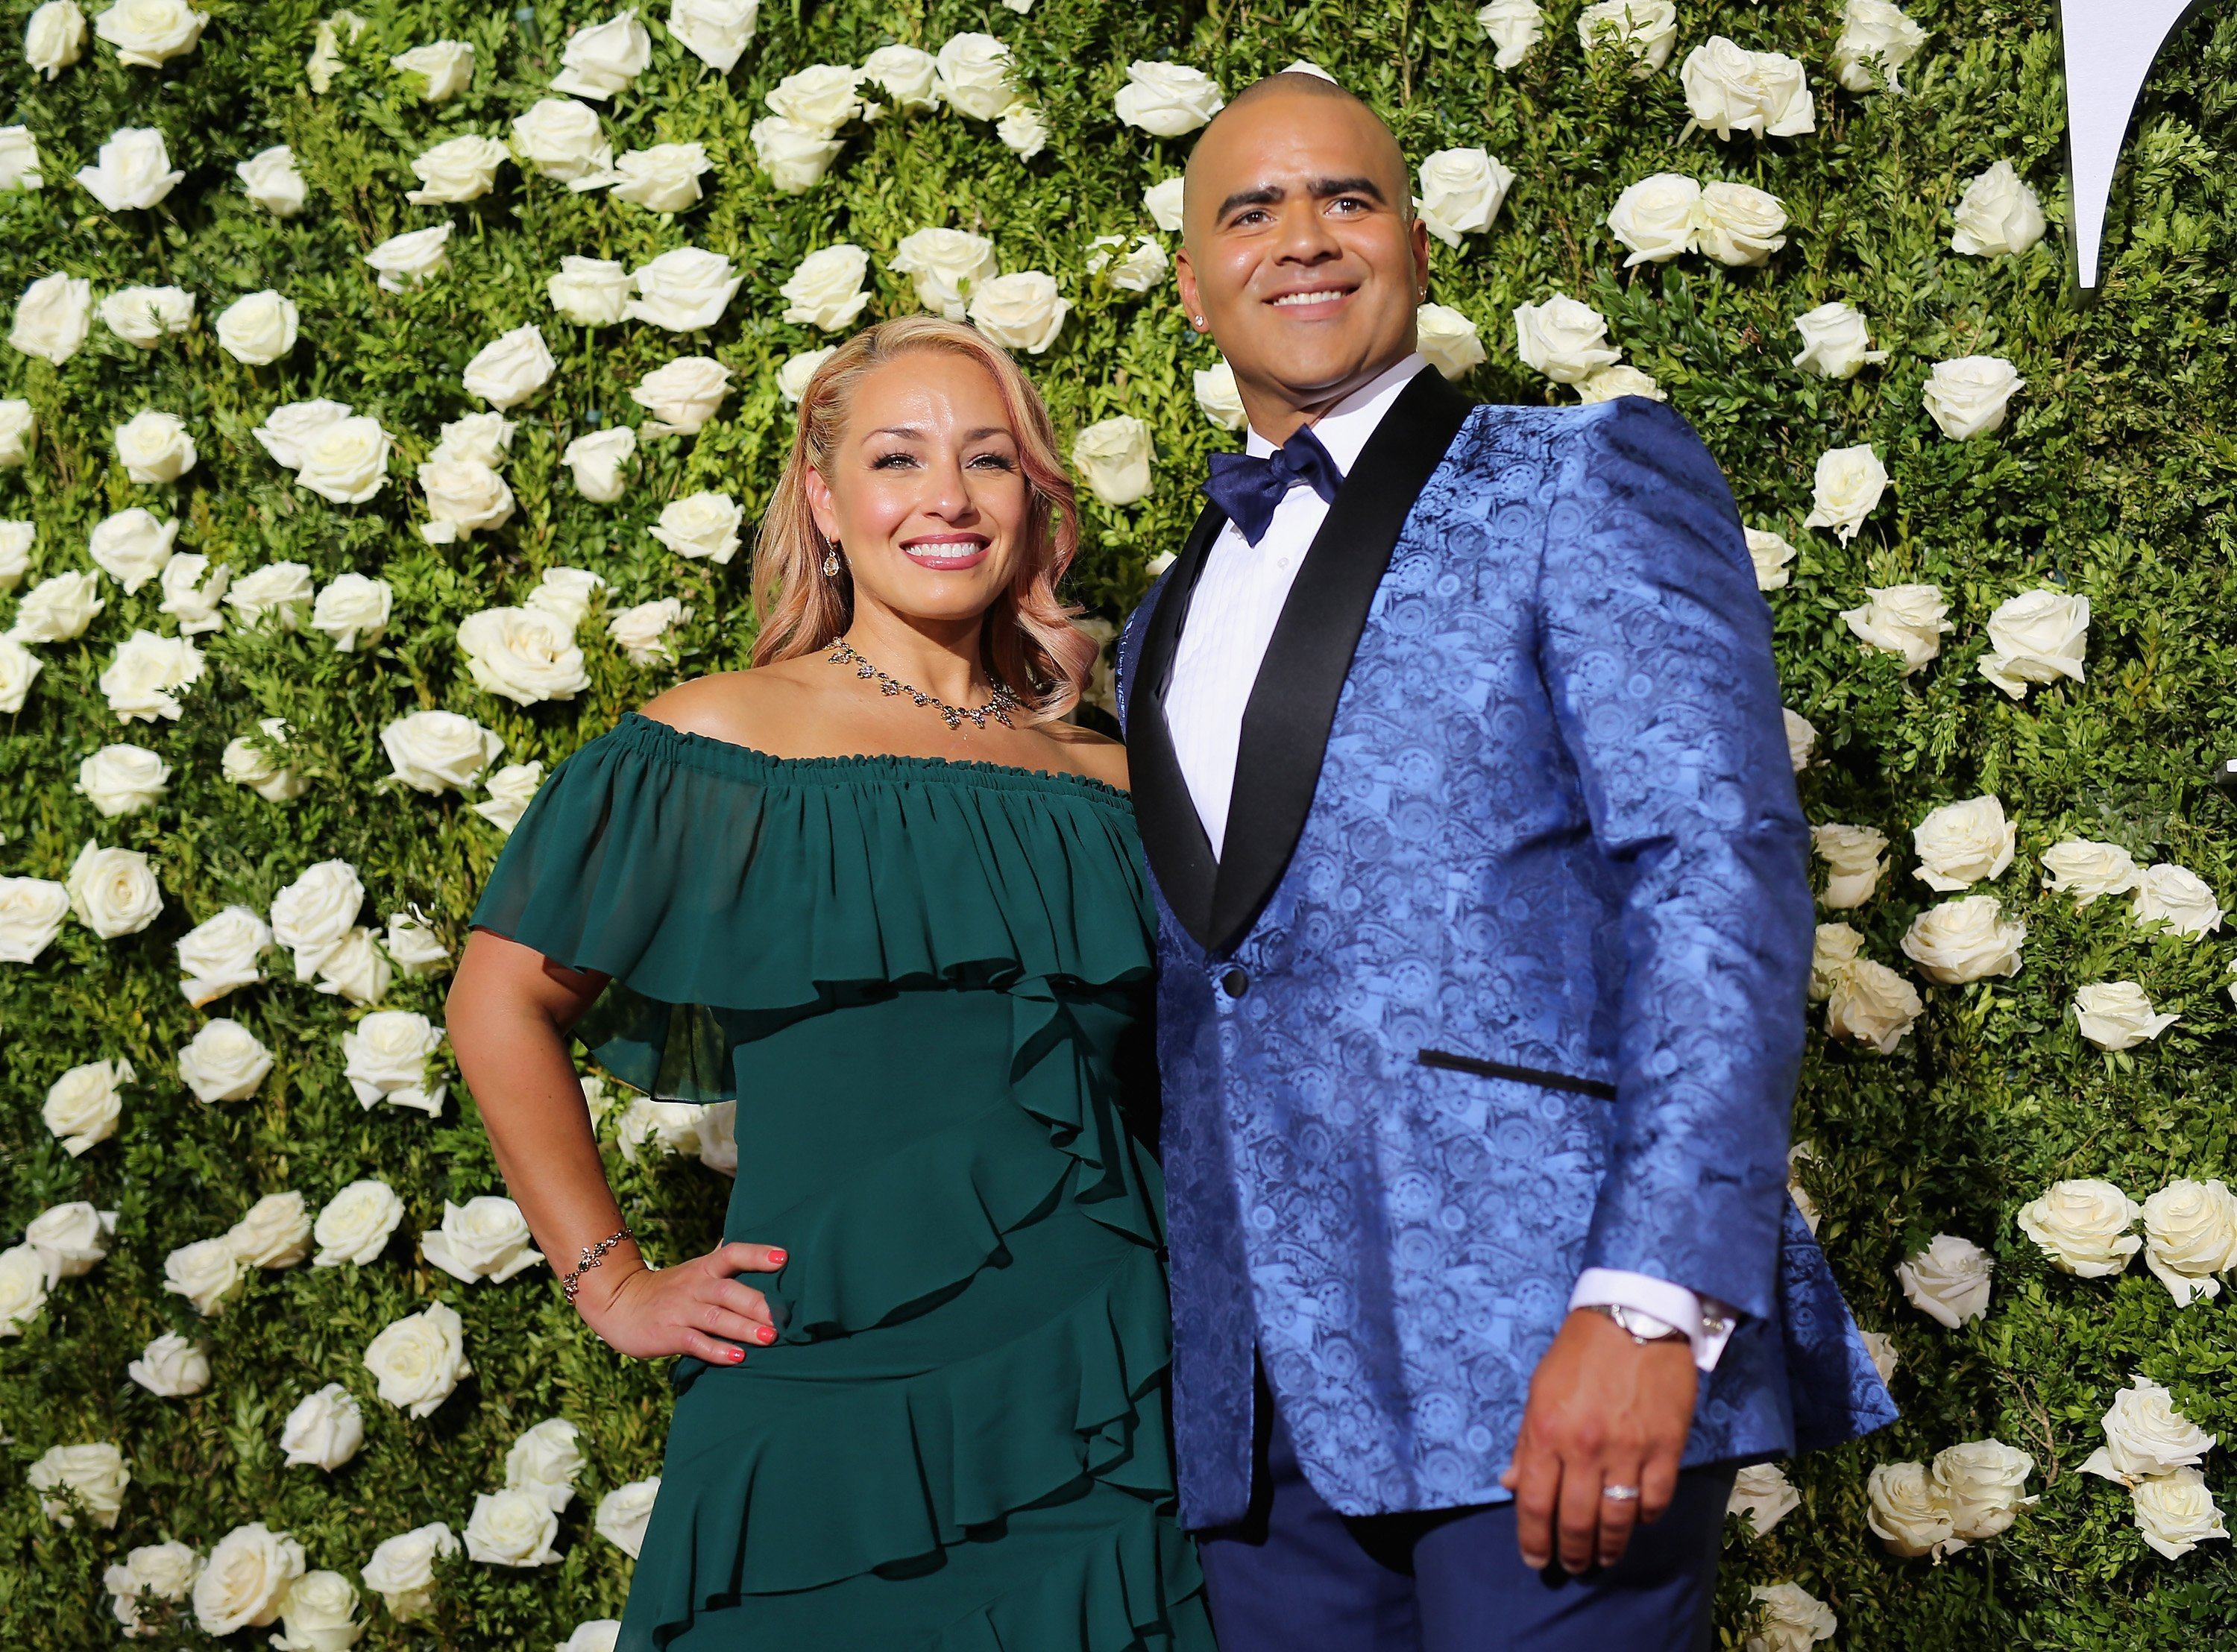 Veronica Jackson and Christopher Jackson attend the 2017 Tony Awards at Radio City Music Hall on June 11, 2017, in New York City. | Source: Getty Images.